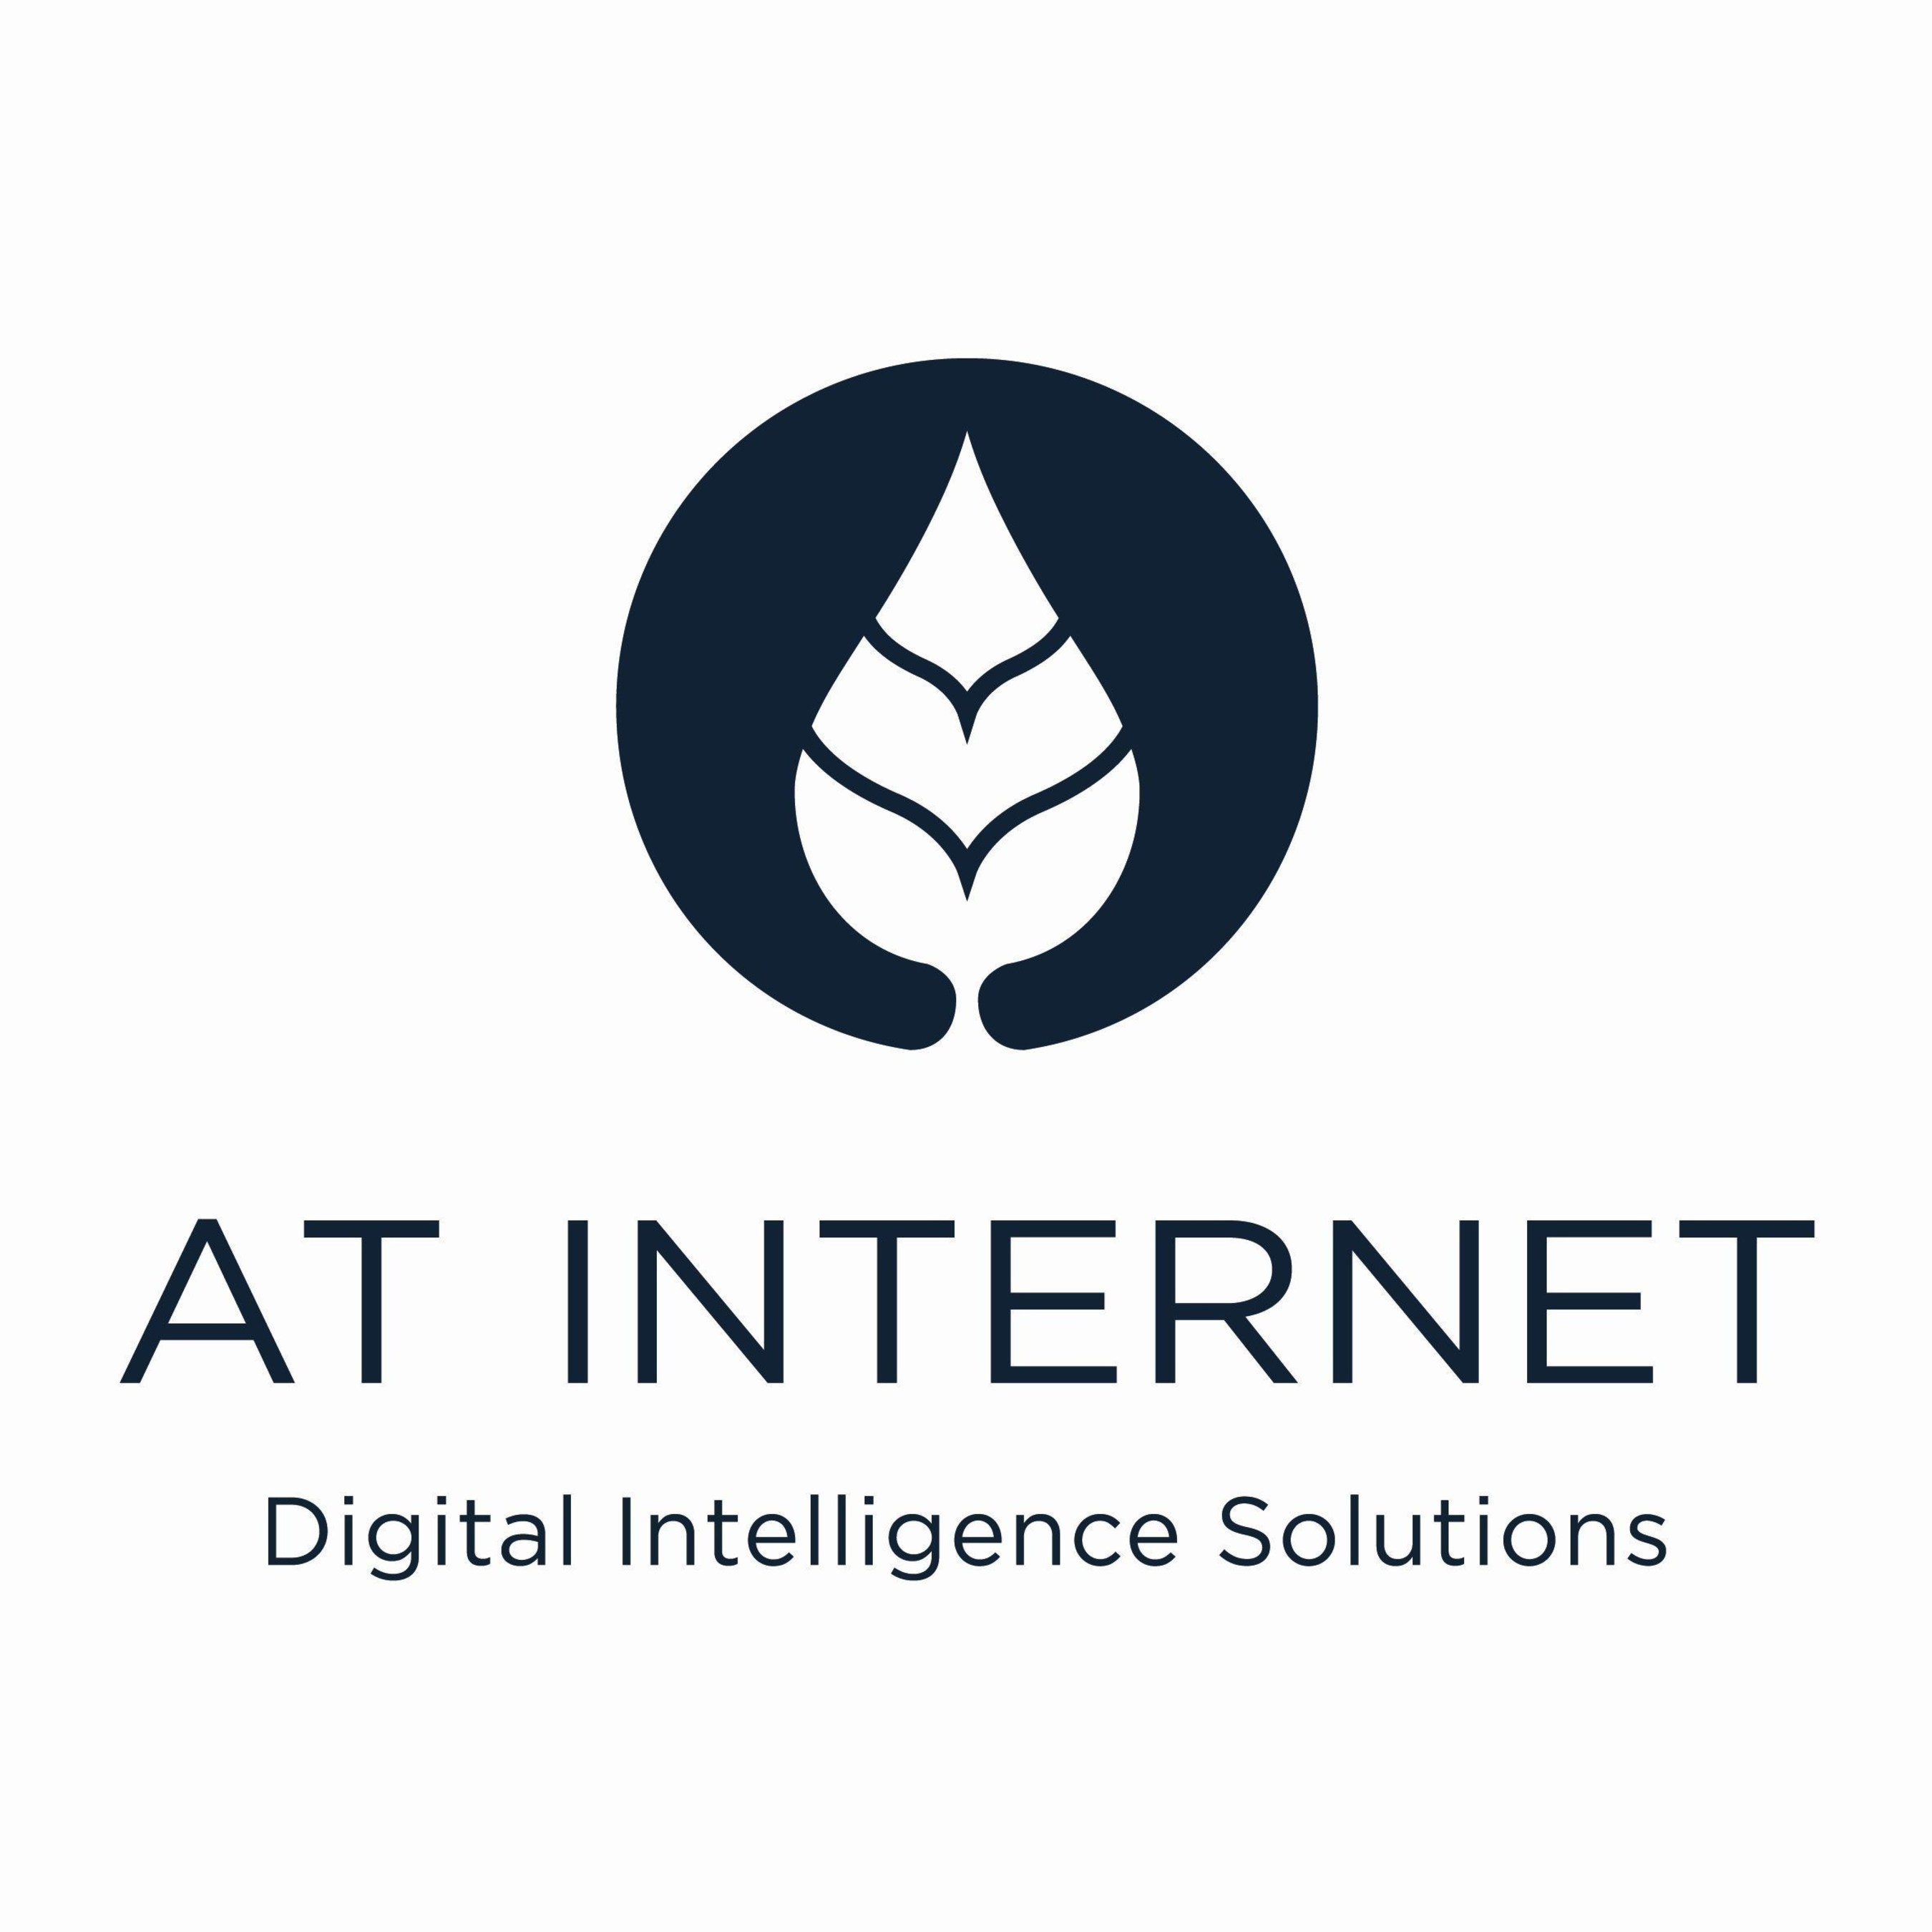 Following Rejection of the Safe Harbor Agreement, AT Internet Analyses Impact and Affirms its Analytics Suite's Total Compliance With EU Legislation